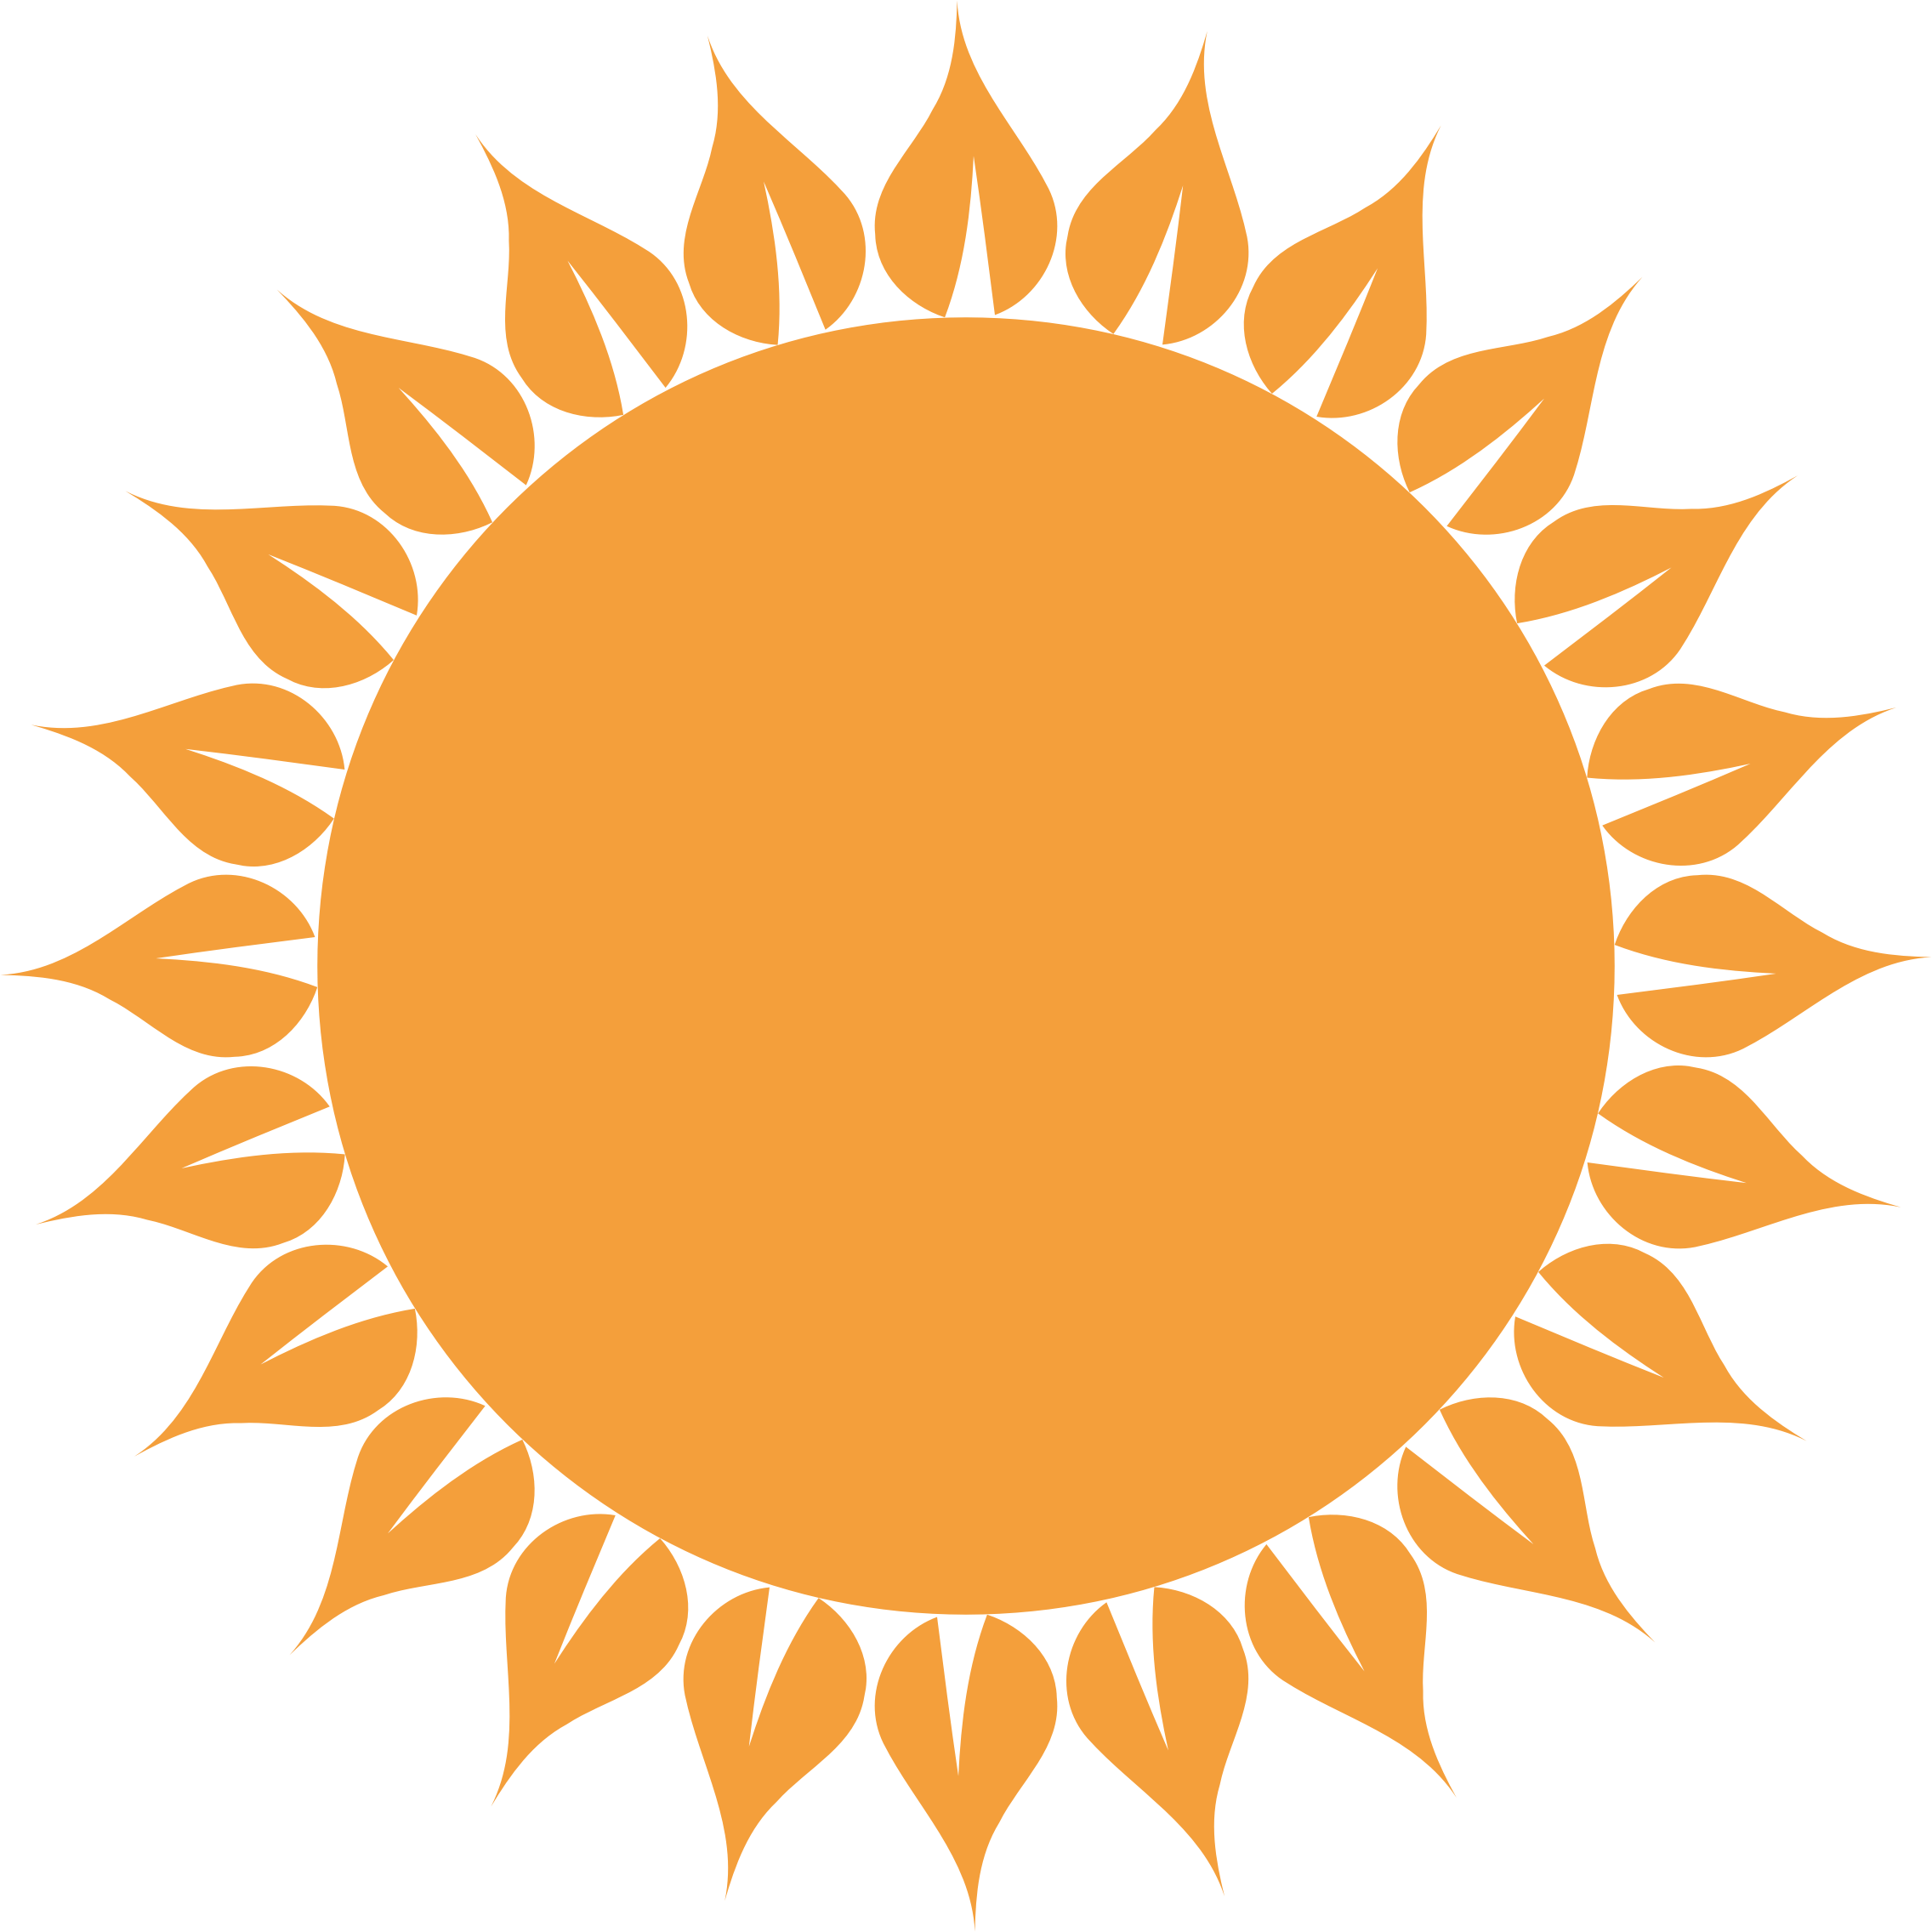 Clipart sun abstract. Big image png